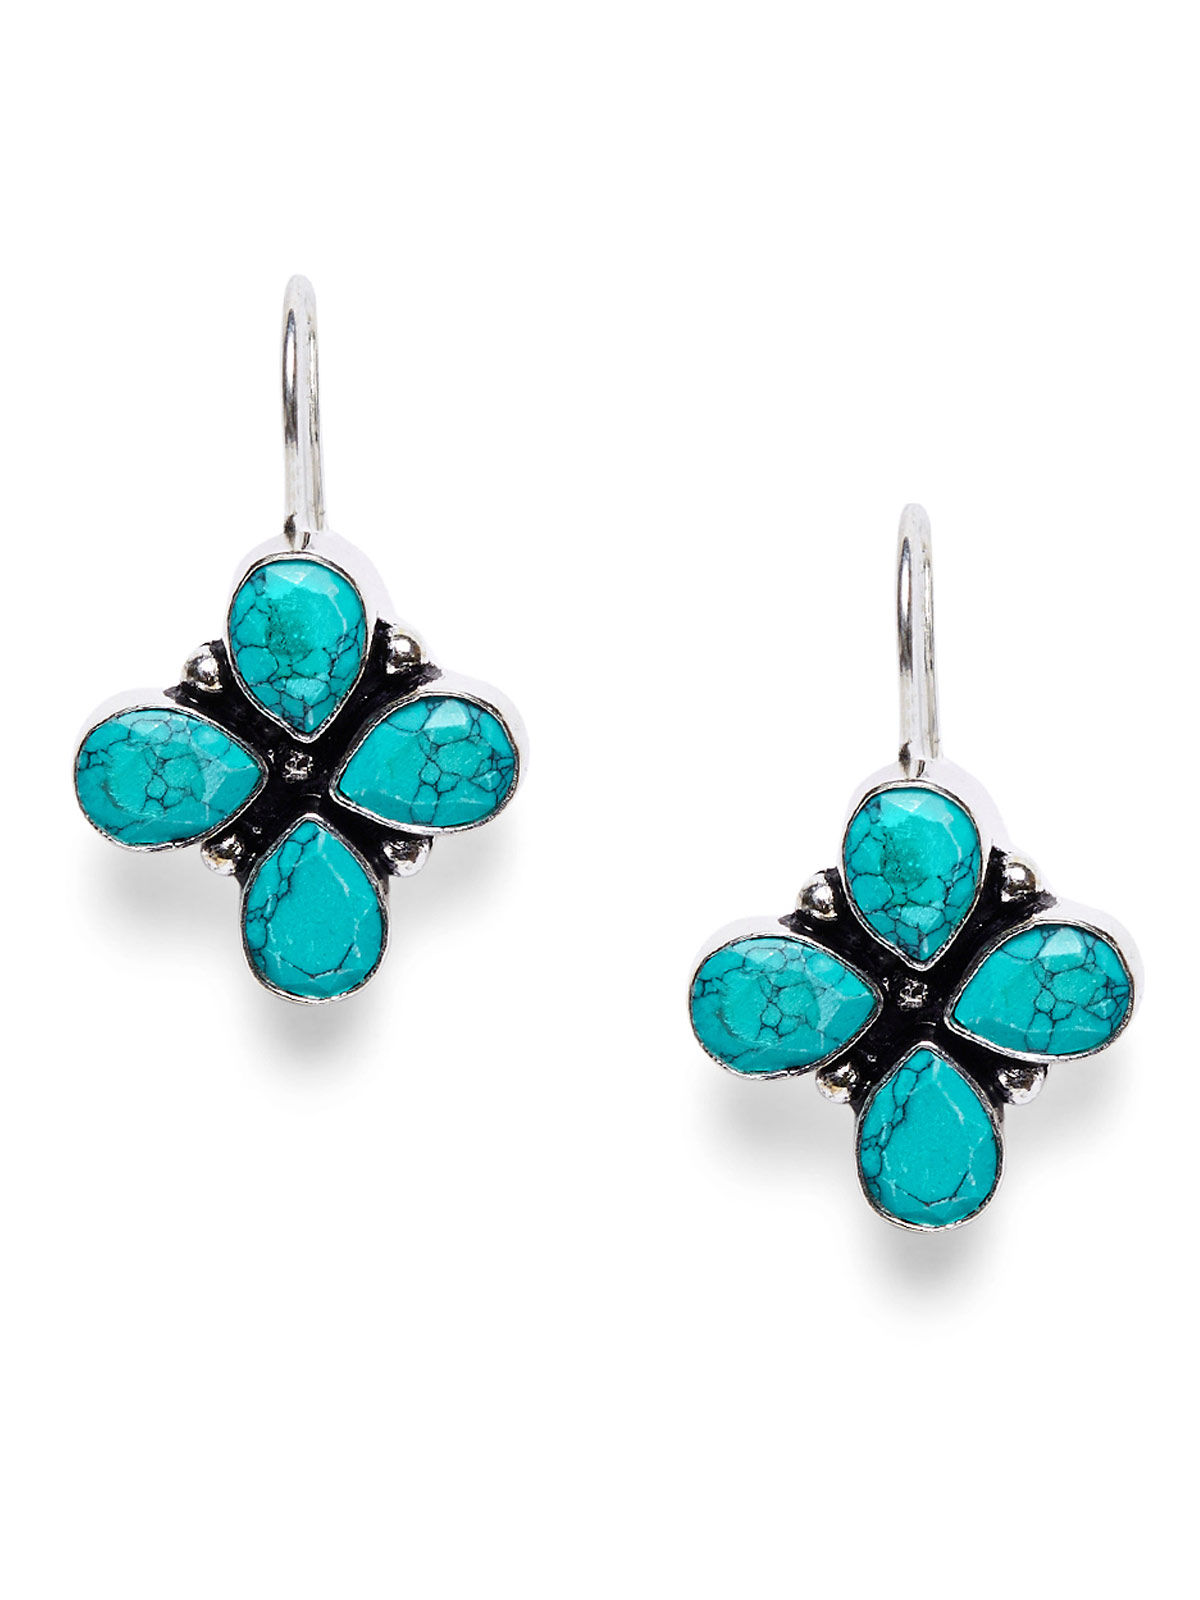 Imli Street flower beeded turquoise jewellery earrings